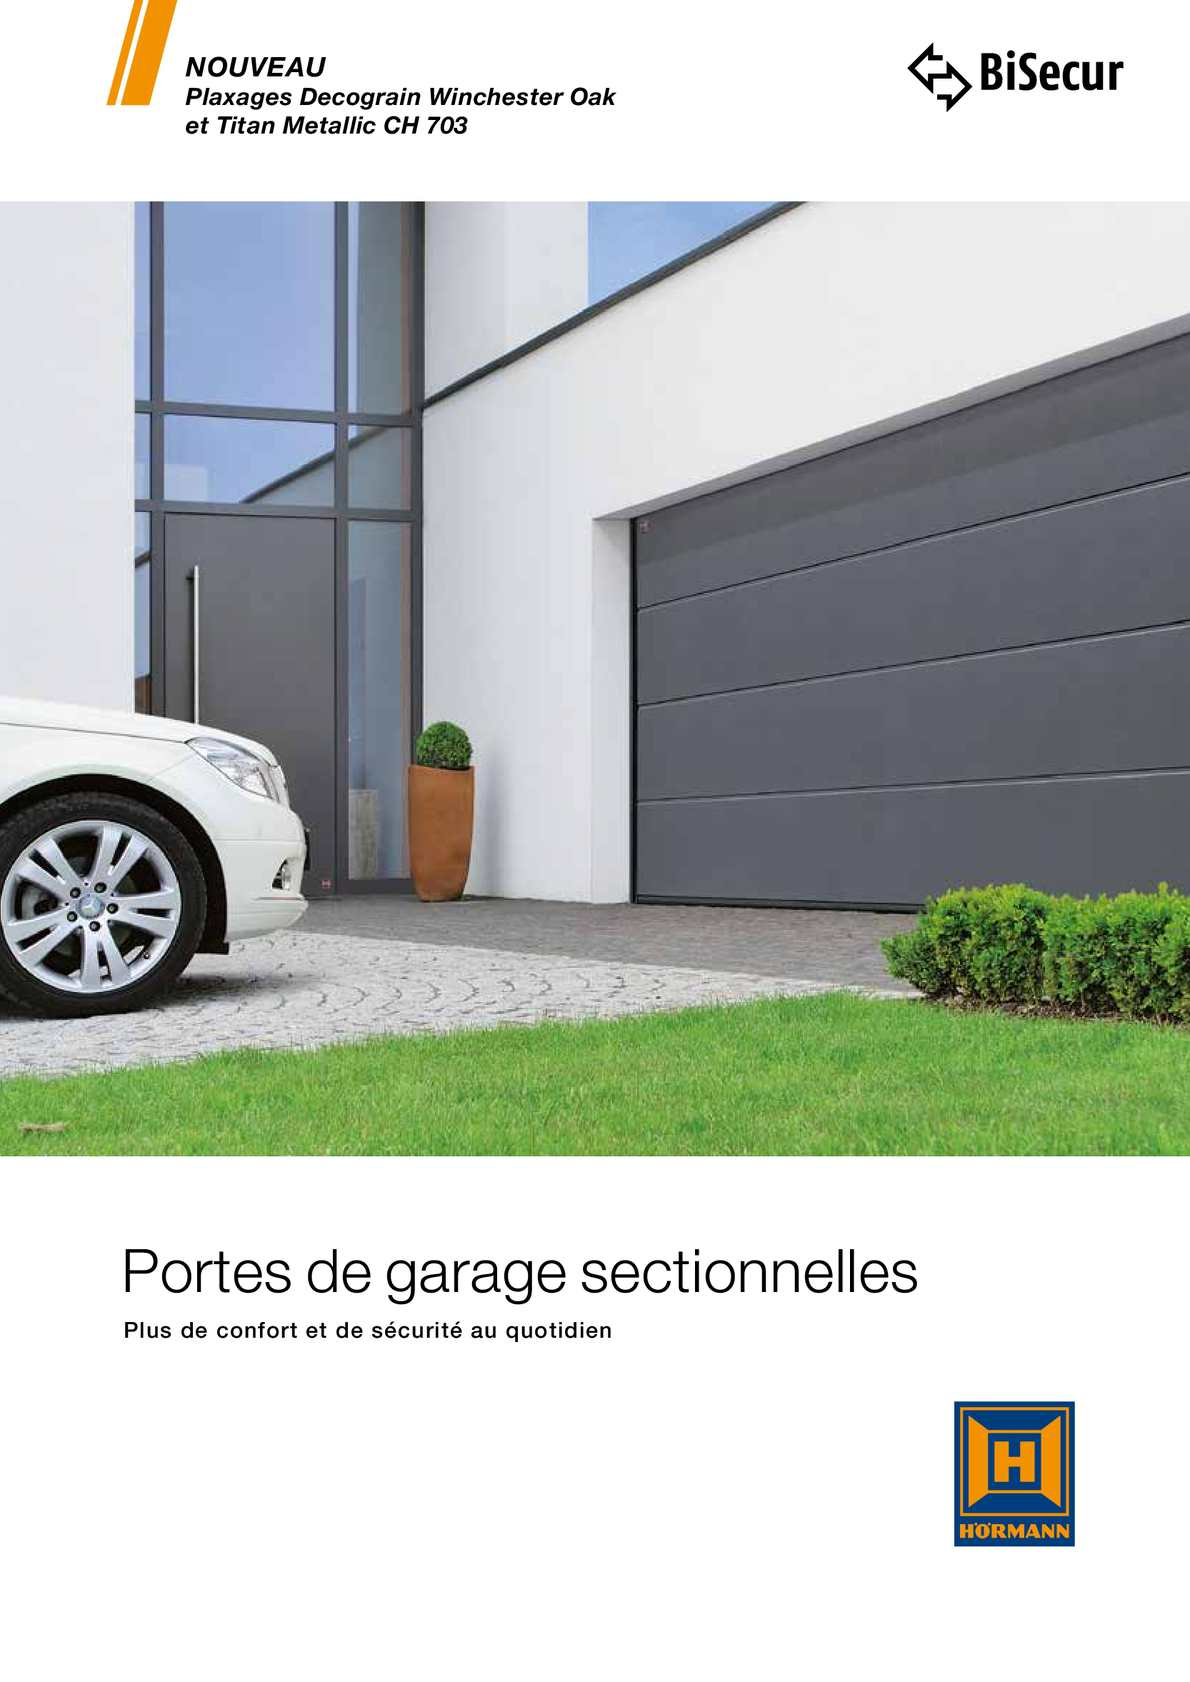 Calam o hormann porte de garage for Montage porte de garage sectionnelle hormann